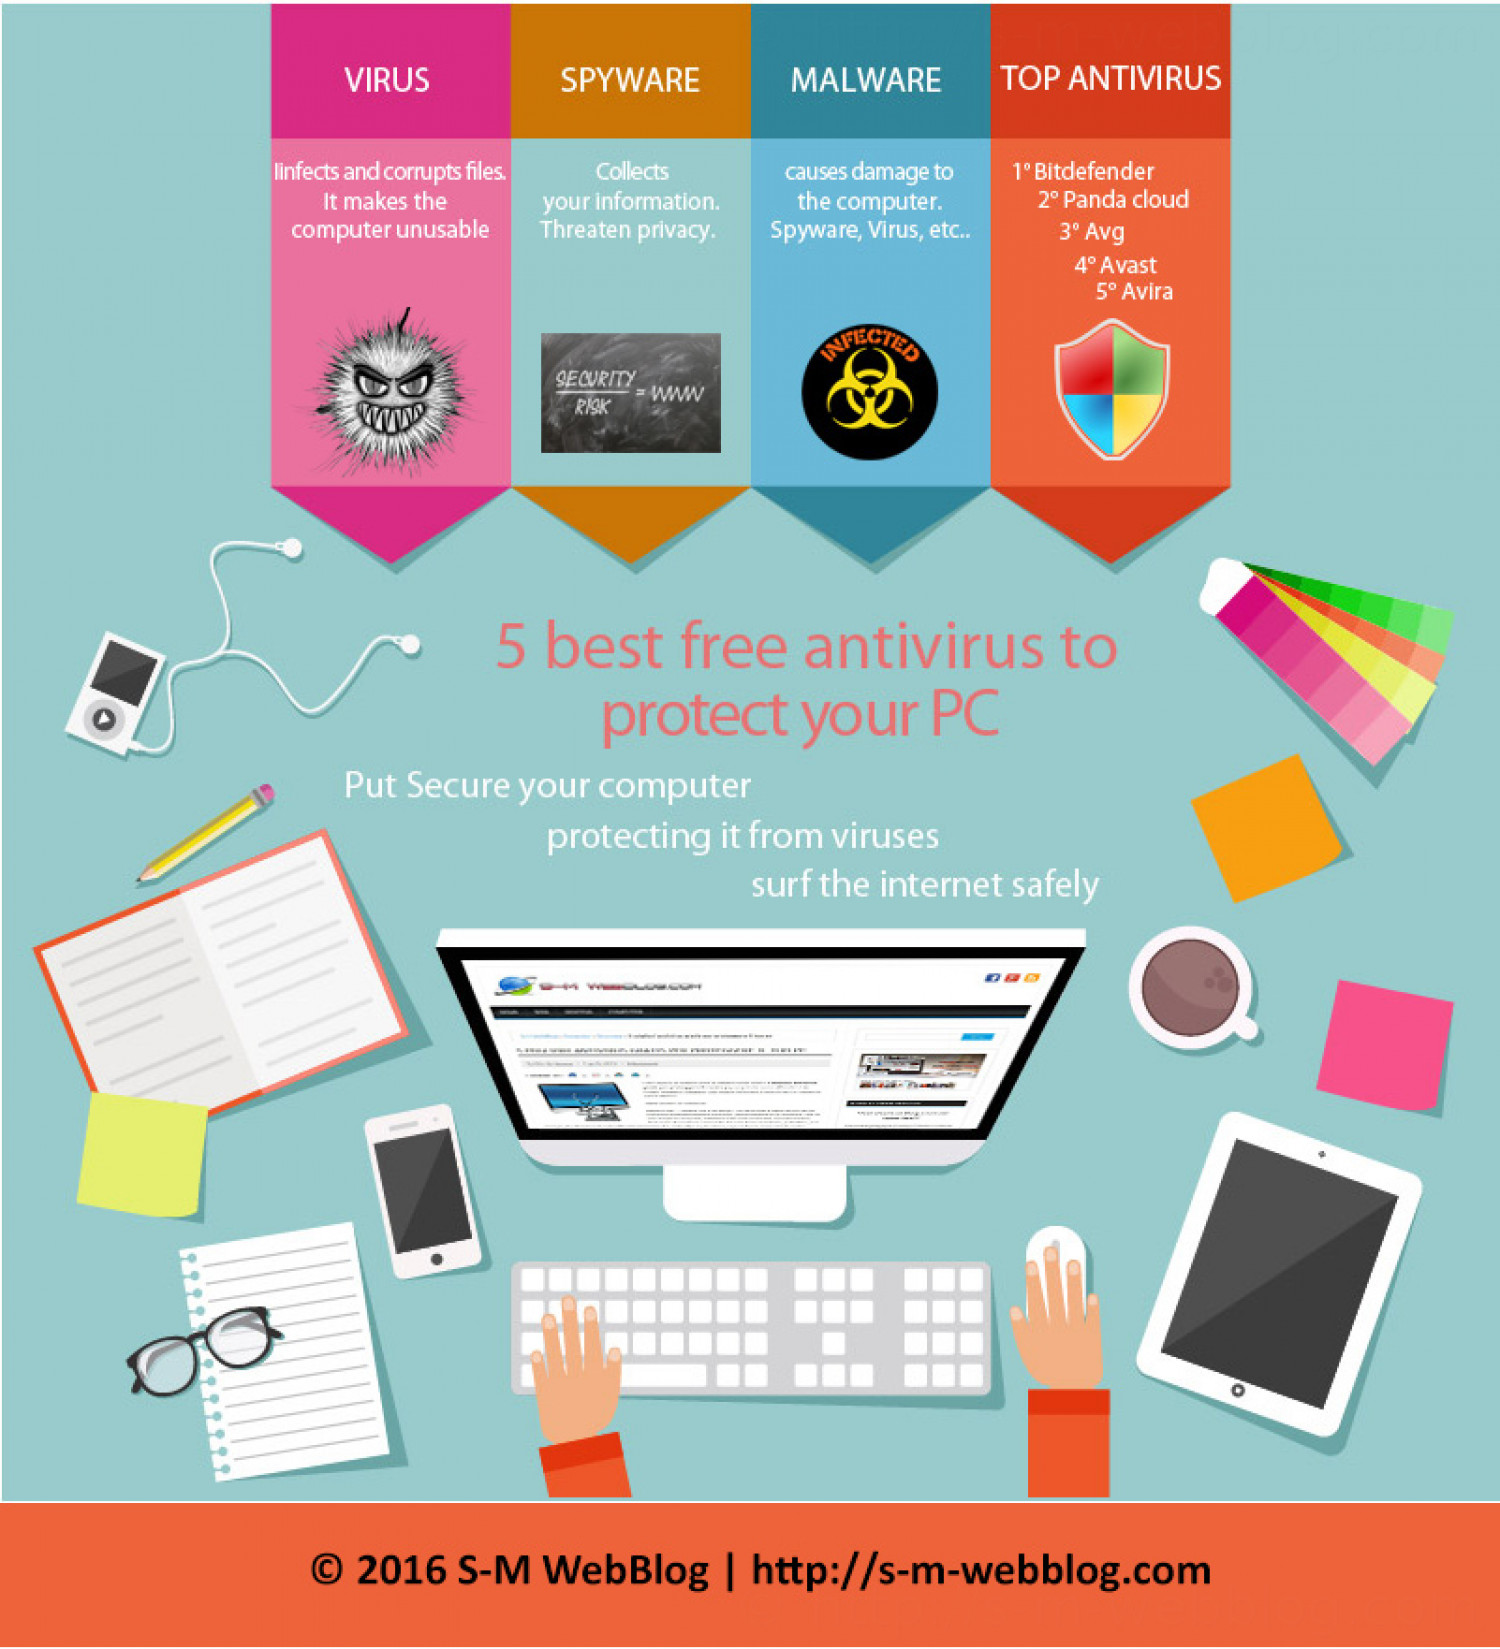 5 best free antivirus to protect your PC Infographic